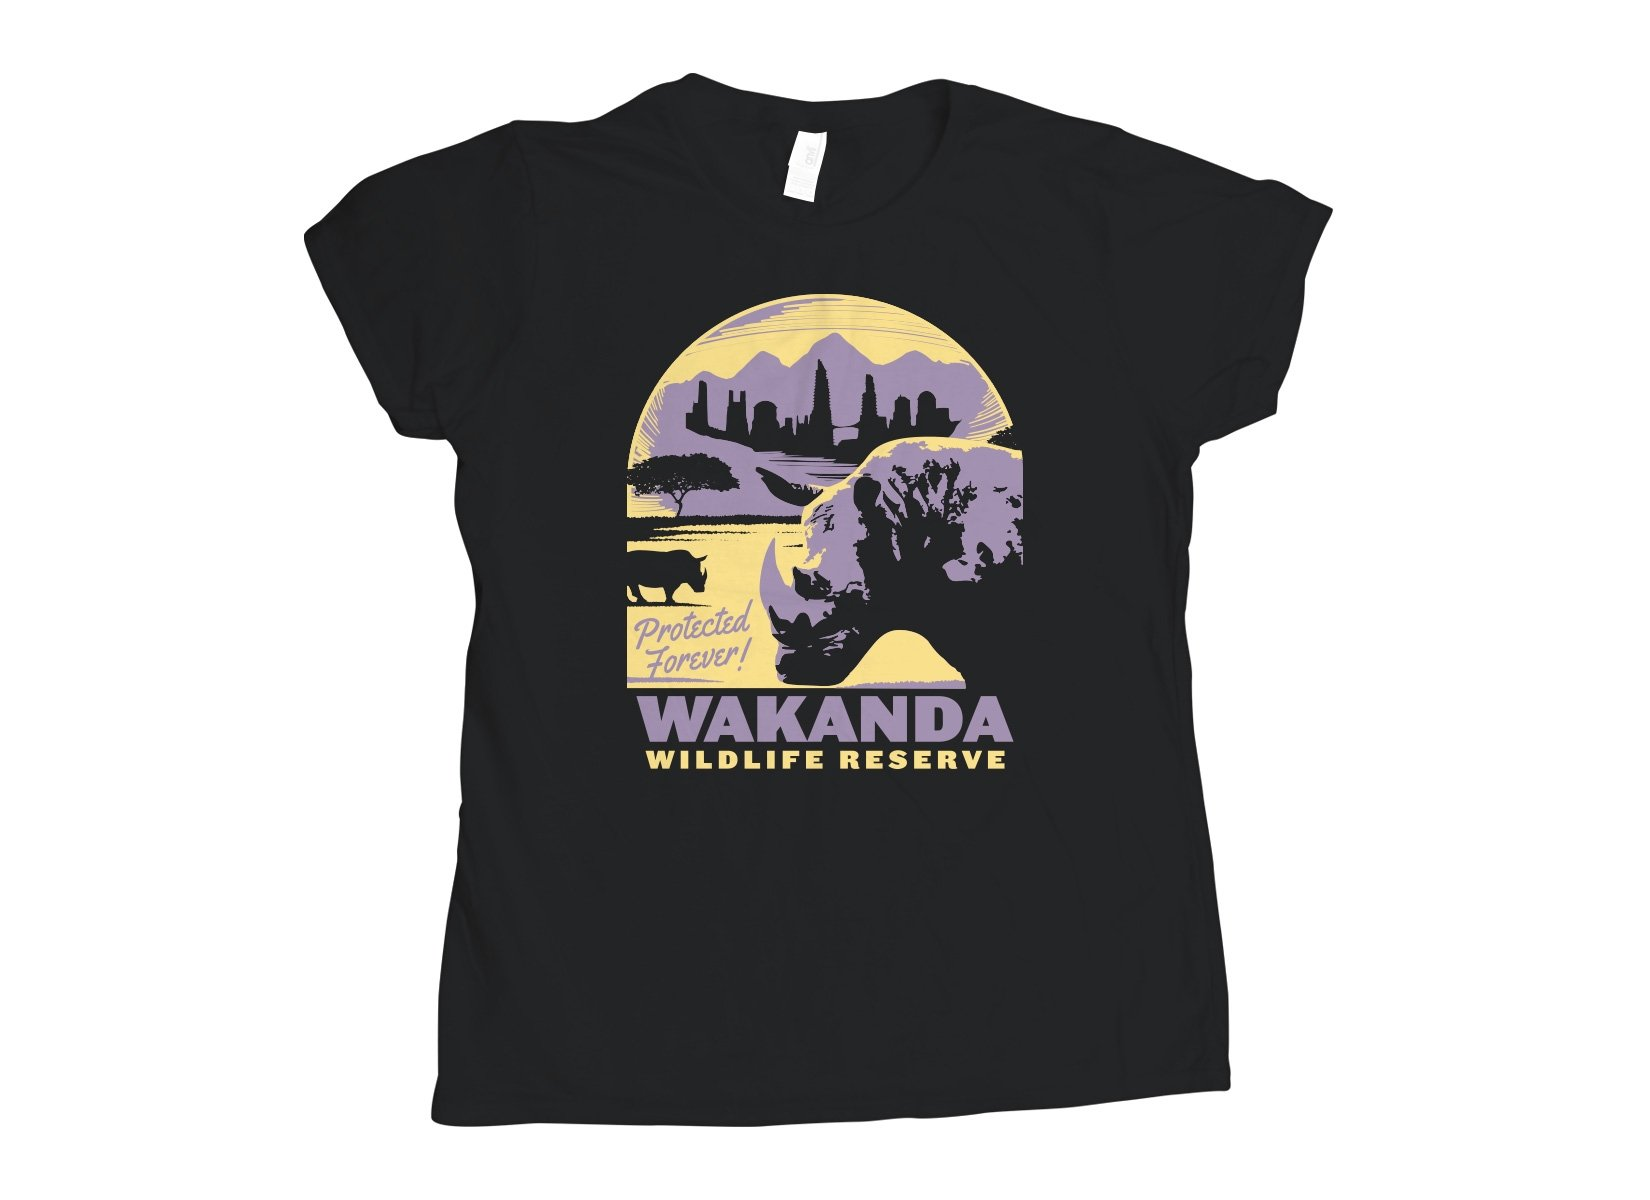 Wakanda Wildlife Reserve on Womens T-Shirt